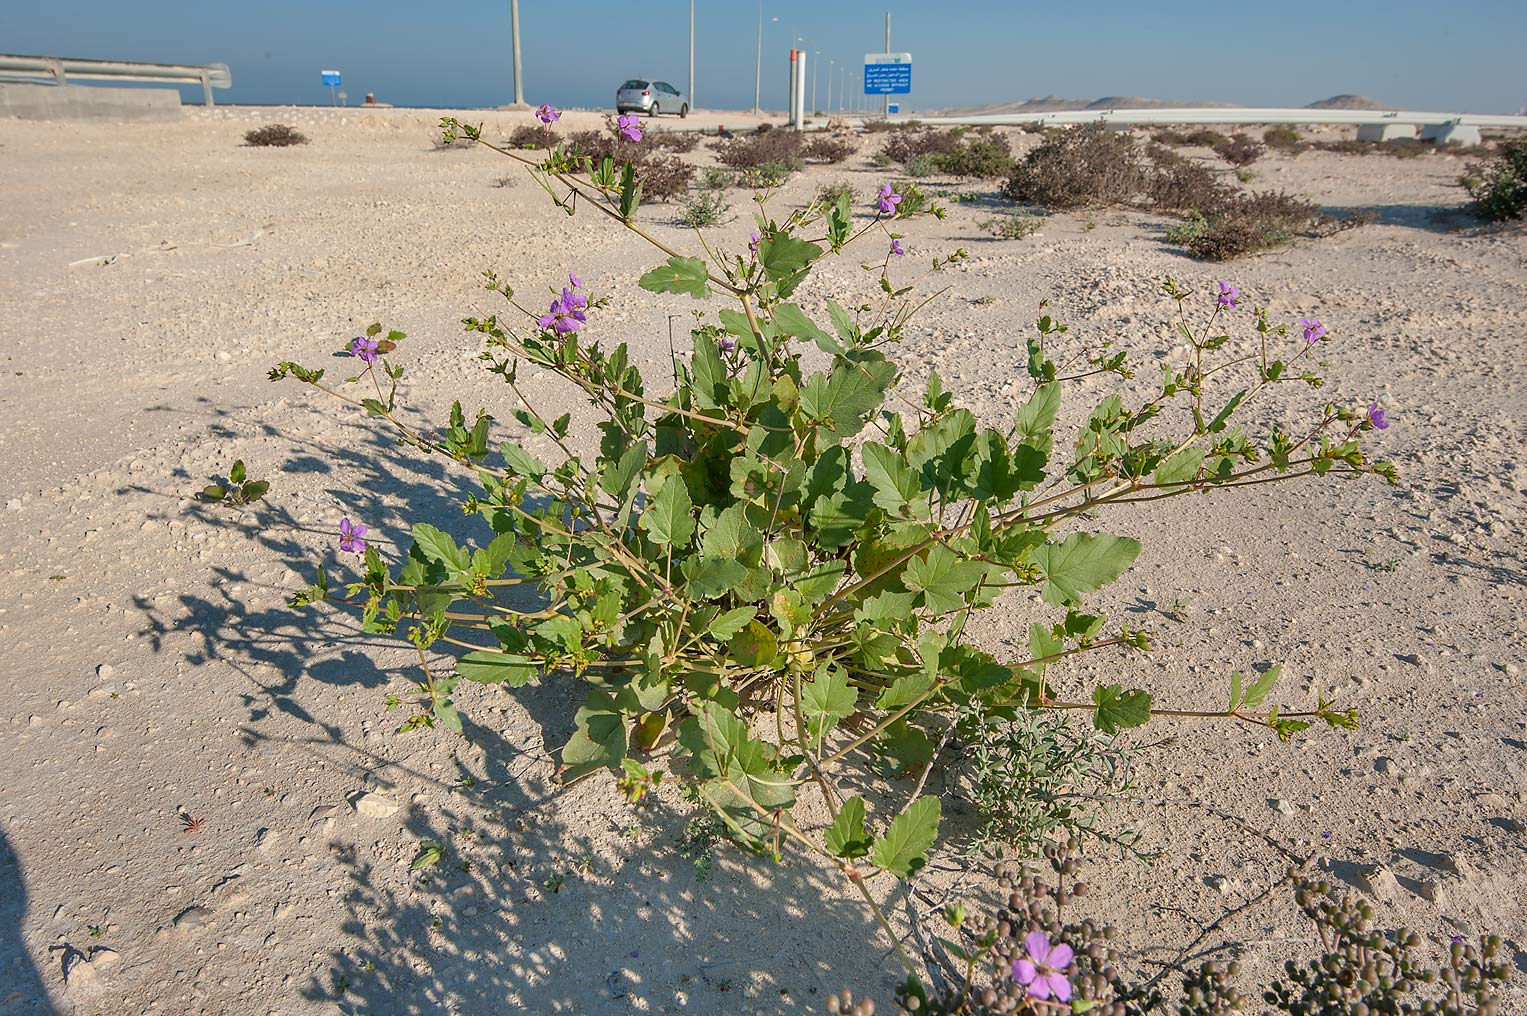 Blooming plant of storkbill (Erodium glaucophyllum) on roadside in Dukhan. Qatar